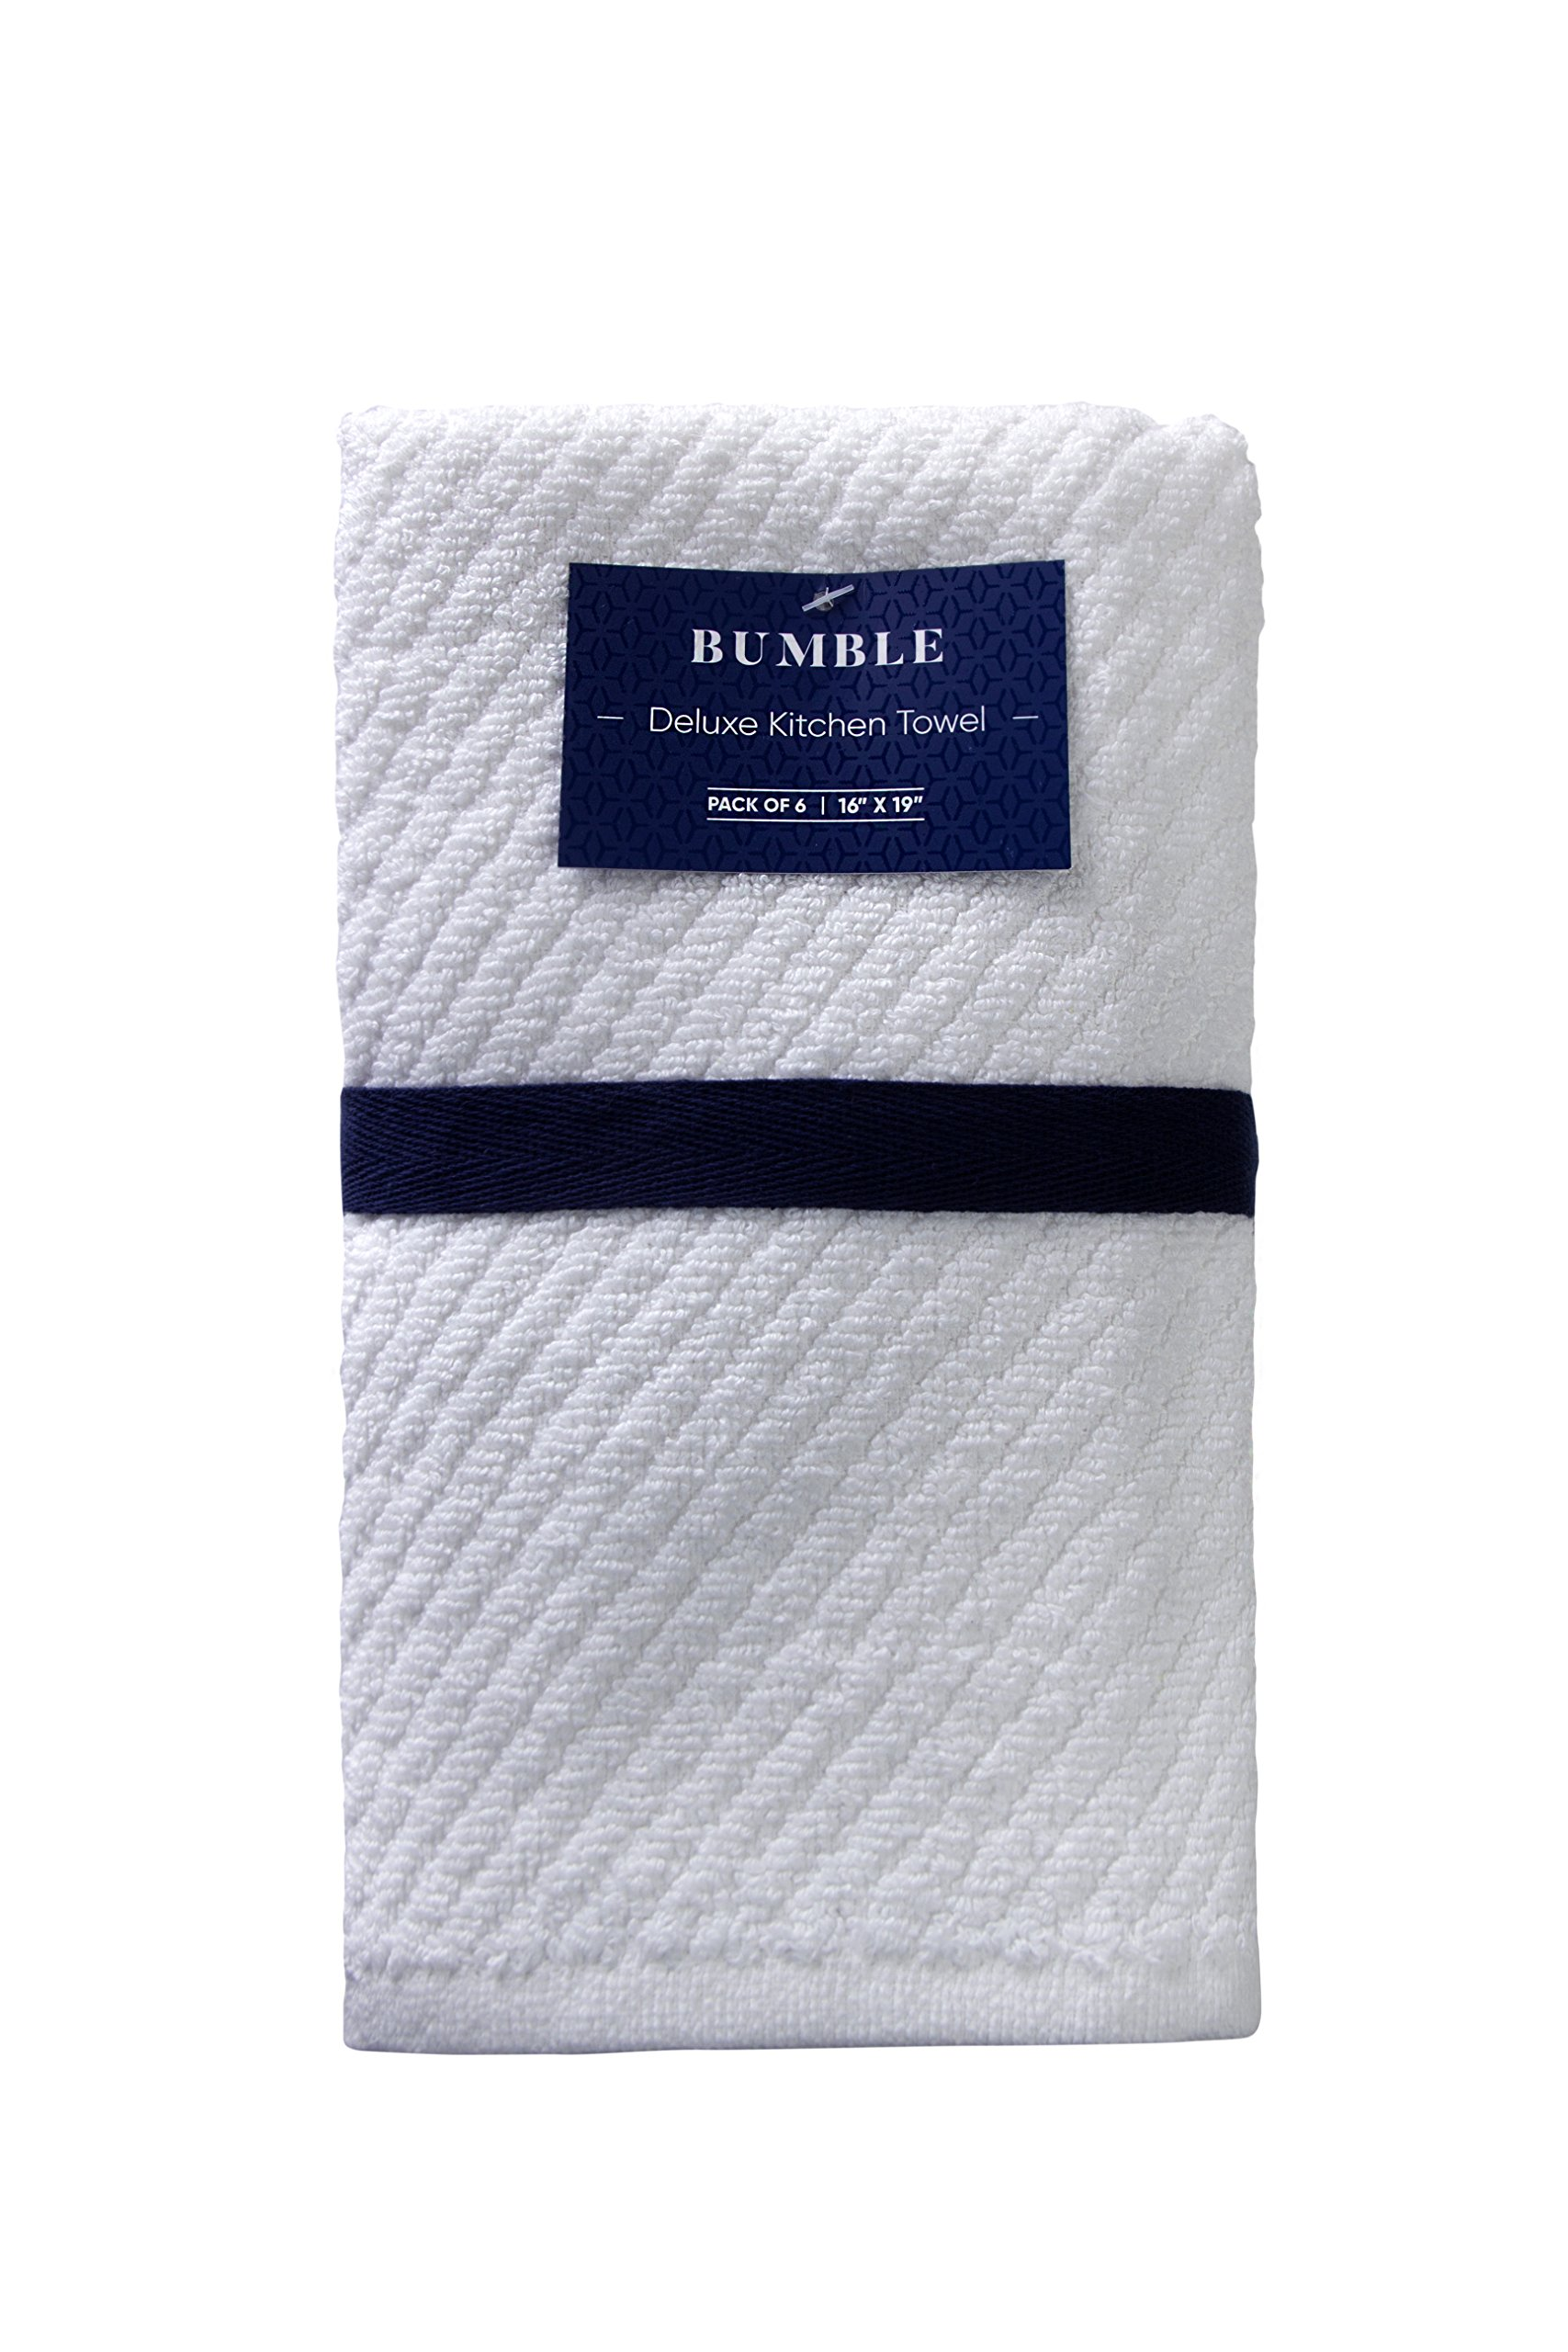 "Bumble Deluxe Barmop Kitchen Towel 6-Pack / 16"" x 19"" / Premium Ultra Absorbent Cotton Hand Towels/Quick Drying Tea Towels/Diagonal Weave Thick 2-Ply/Long Lasting - White"